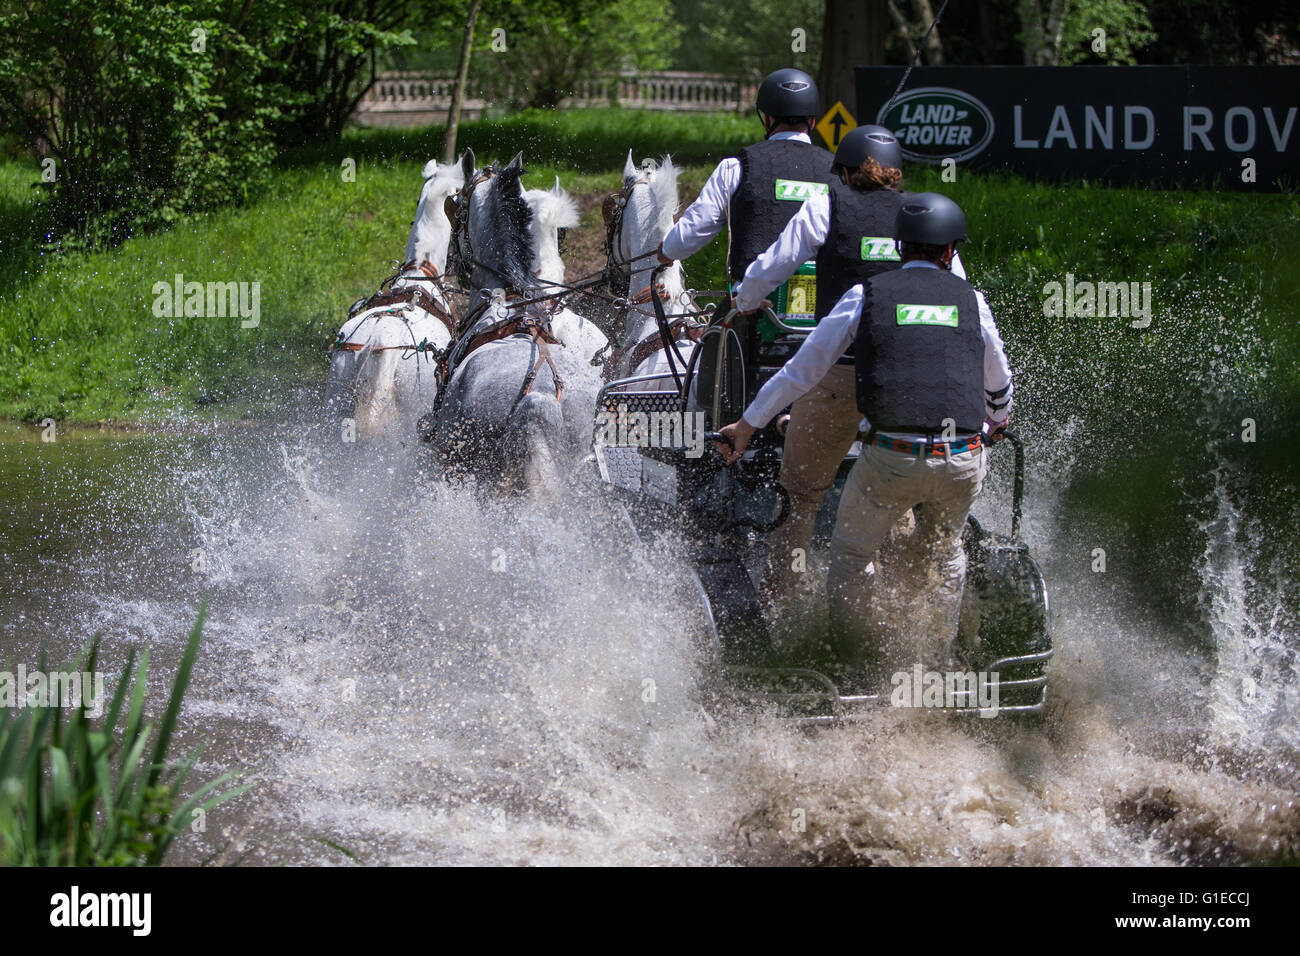 Great Windsor Park, Windsor, UK. 14th May, 2016. Royal Windsor Horse Show. Daniel Naprous enters the water obstacle - Stock Image